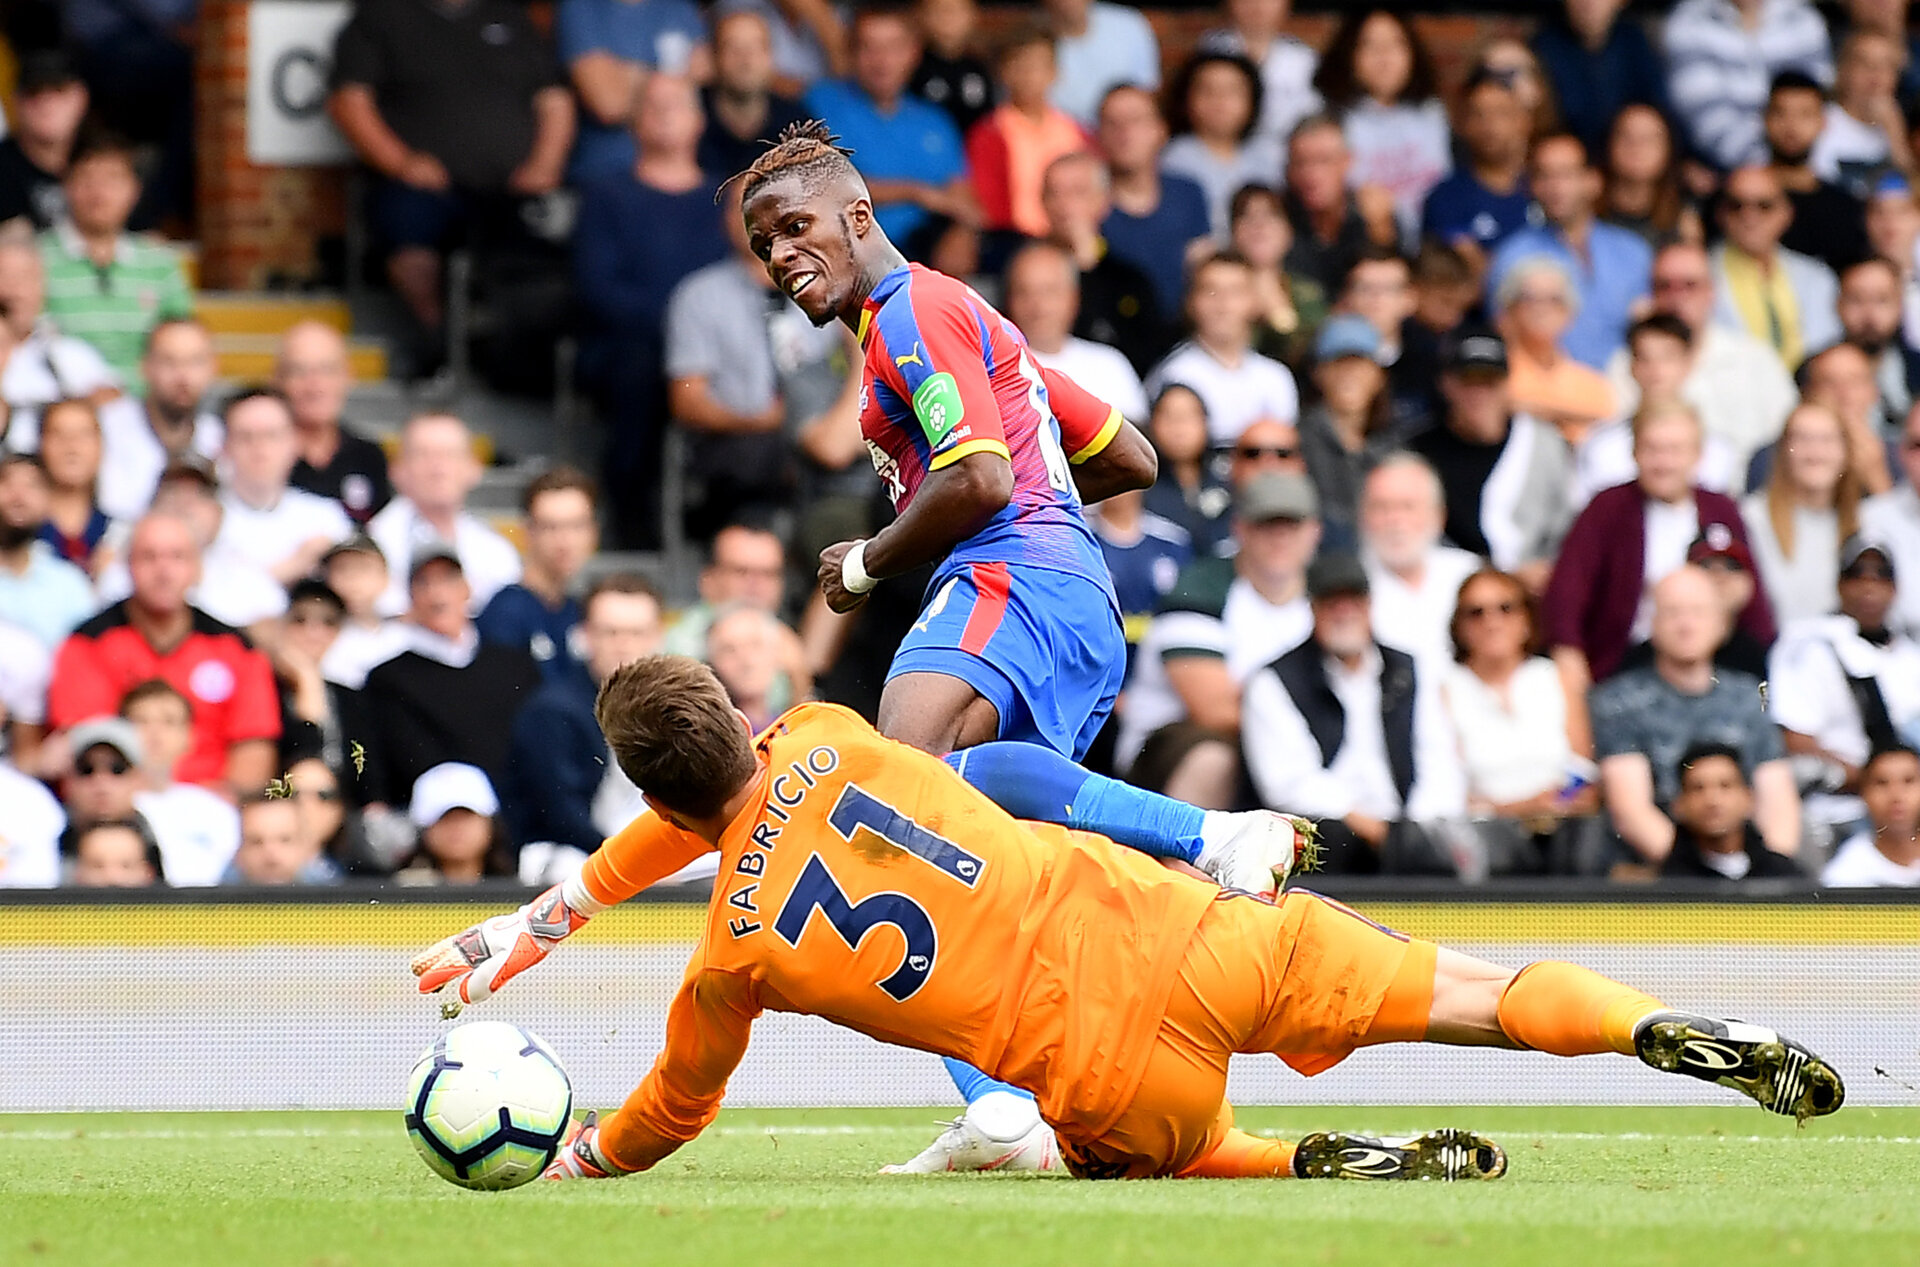 LONDON, ENGLAND - AUGUST 11:  Wilfried Zaha of Crystal Palace scores his team's second goal past Fabricio Agosto Ramirez of Fulham during the Premier League match between Fulham FC and Crystal Palace at Craven Cottage on August 11, 2018 in London, United Kingdom.  (Photo by Justin Setterfield/Getty Images)